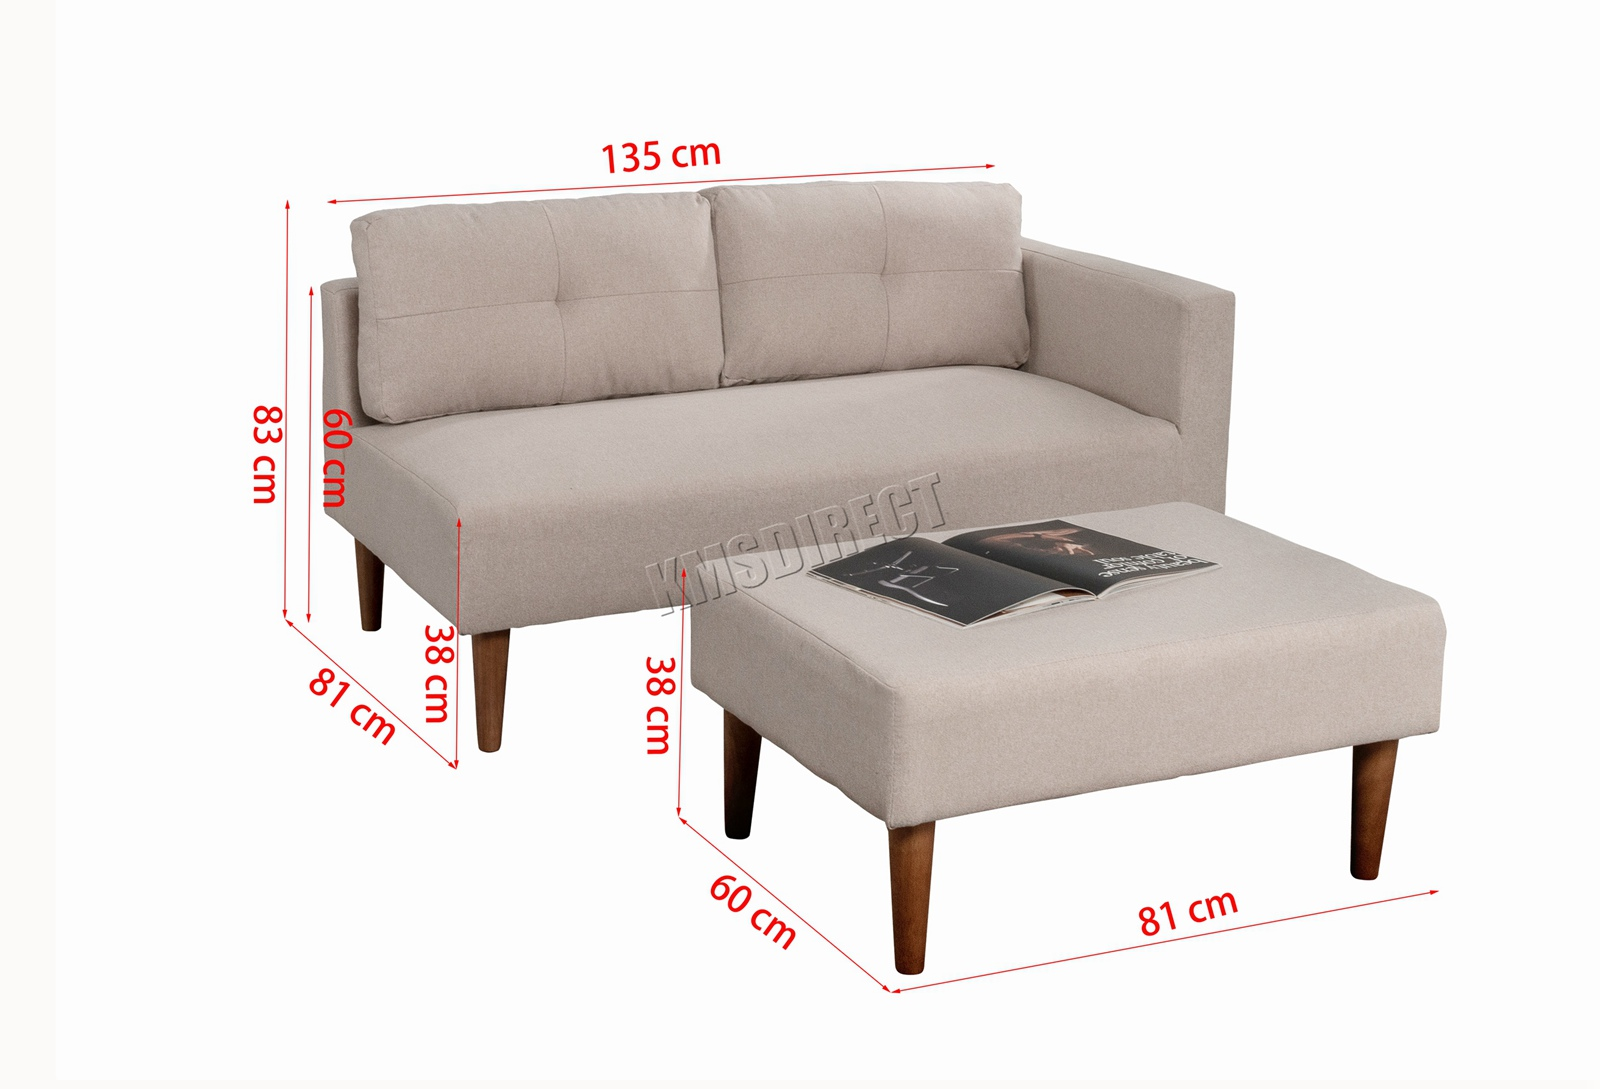 Details About Westwood Fabric Sofa With Stool Footrest 2 3 Seater Chaise Longue Couch Fss01